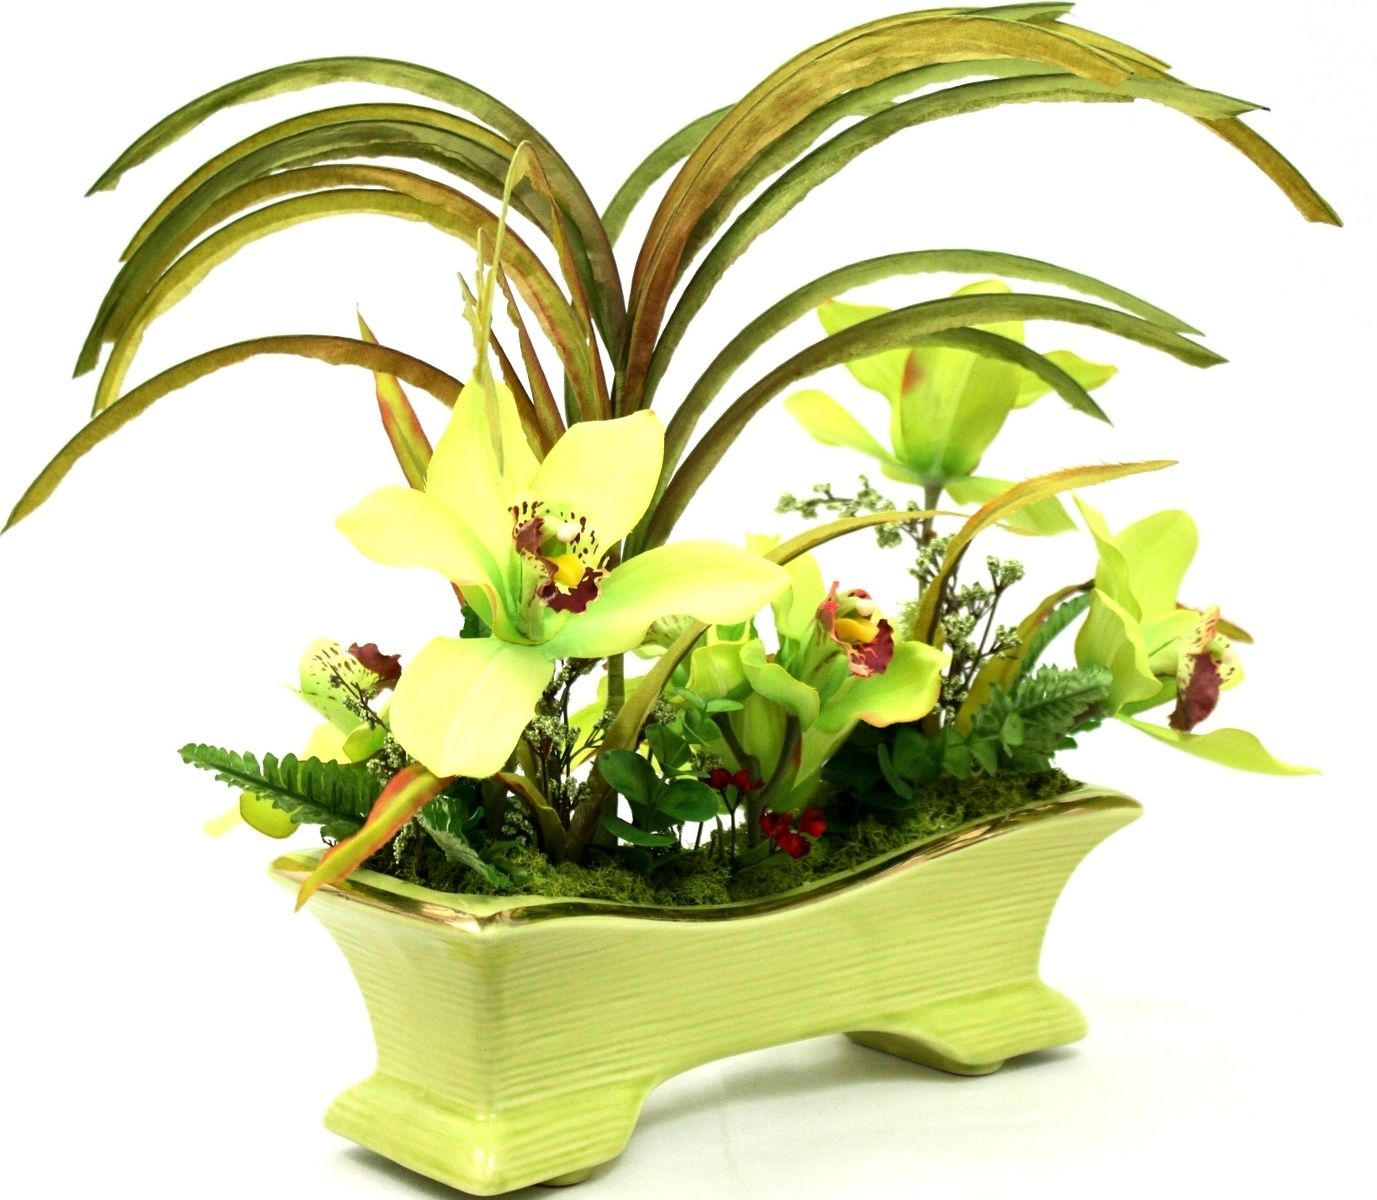 Buy Custom Dining Table Centerpiece Silk Floral  : 195455521219 from www.custommade.com size 1377 x 1200 jpeg 163kB